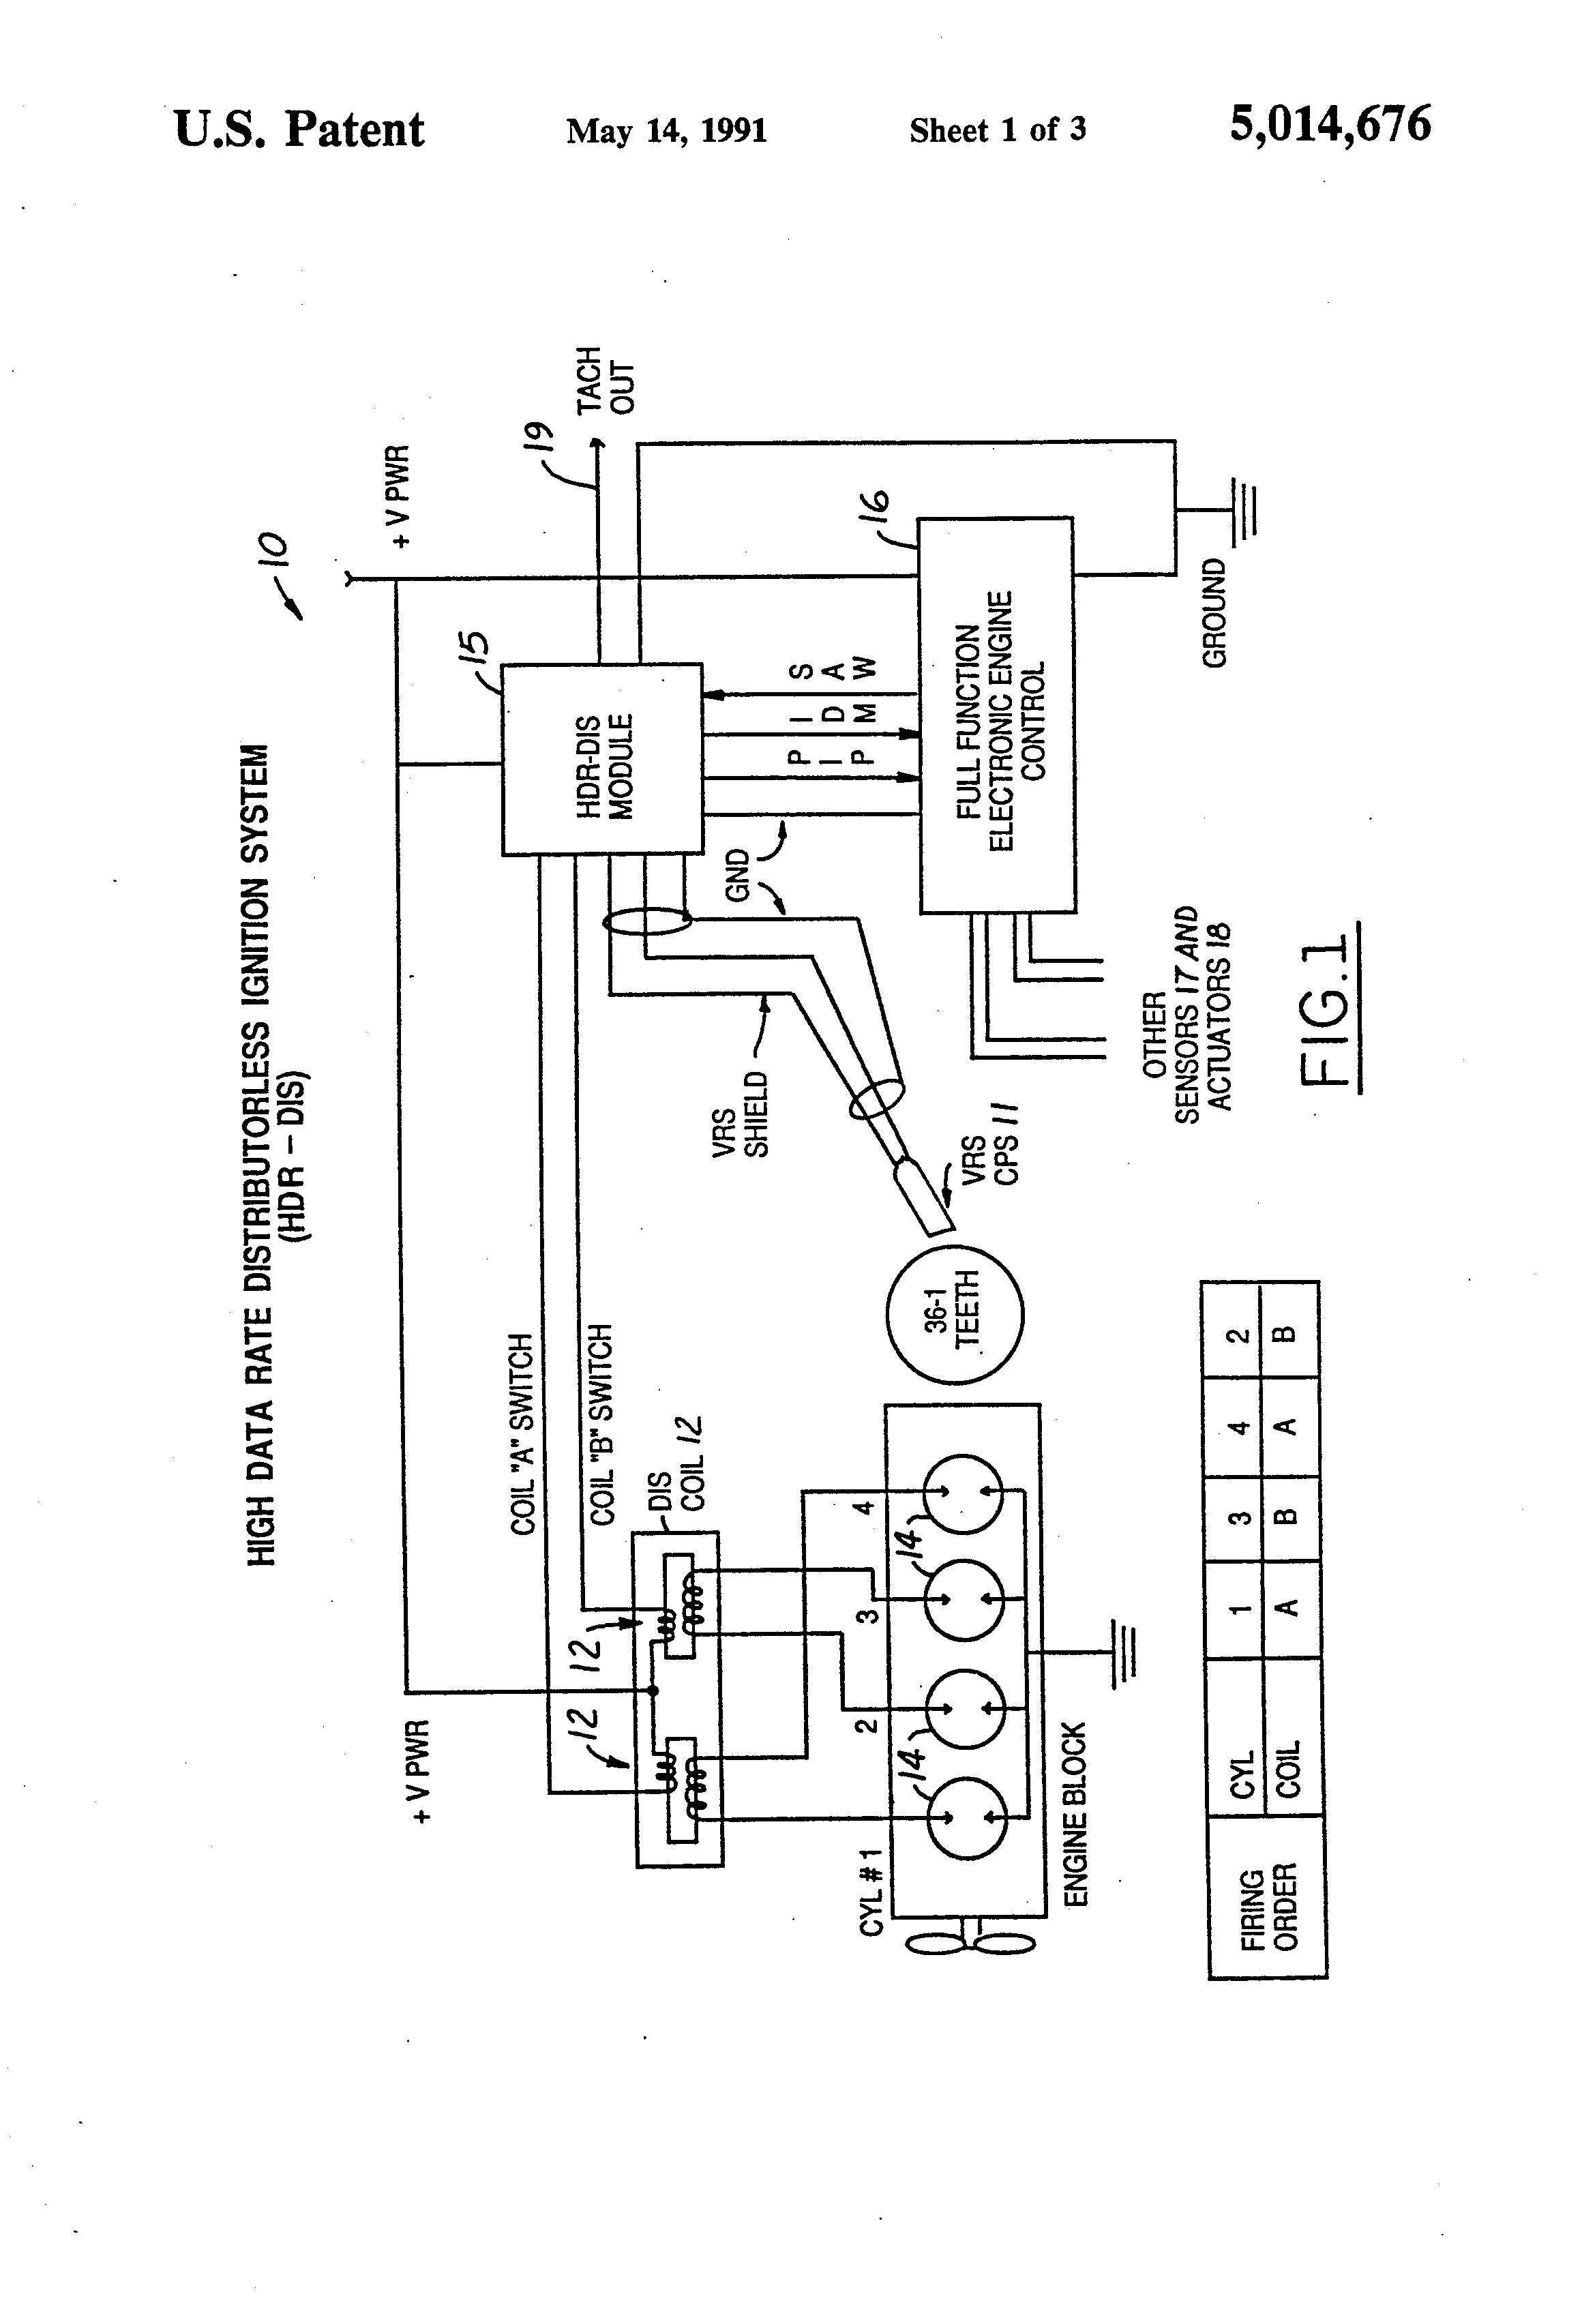 Delphi Radio Wiring Diagram Snap Dea355 34 Images Diagrams Gsmx